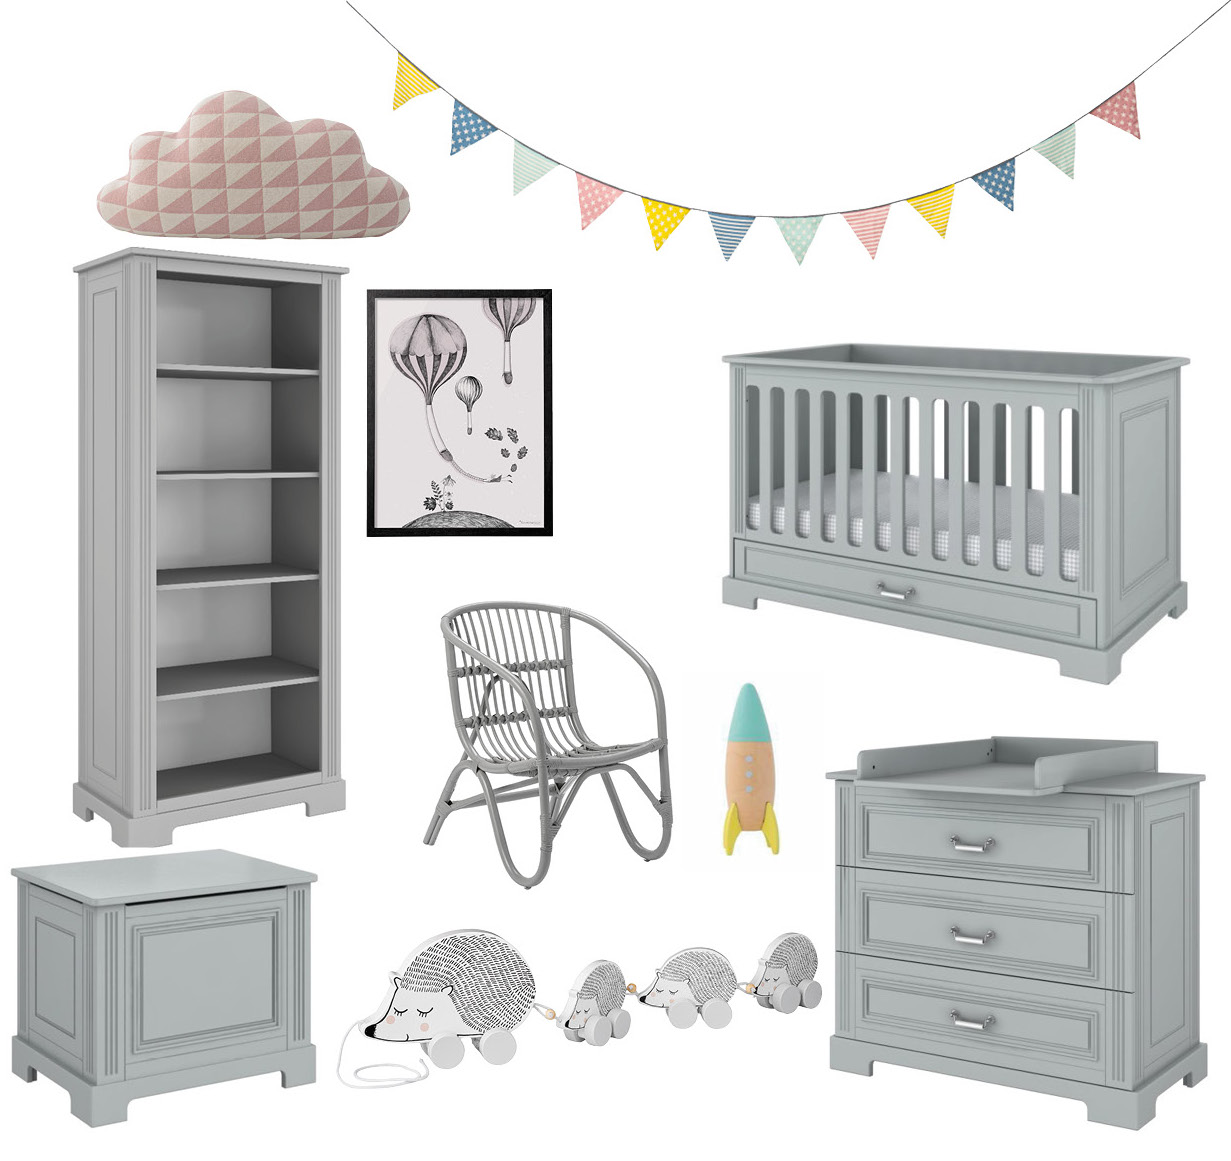 grey furniture nursery. Grey Is The Perfect Modern Neutral Colour For A Nursery, And No Wonder It So Popular, Exuding Sense Of Sophisticated Elegance Serene Calm. Furniture Nursery S